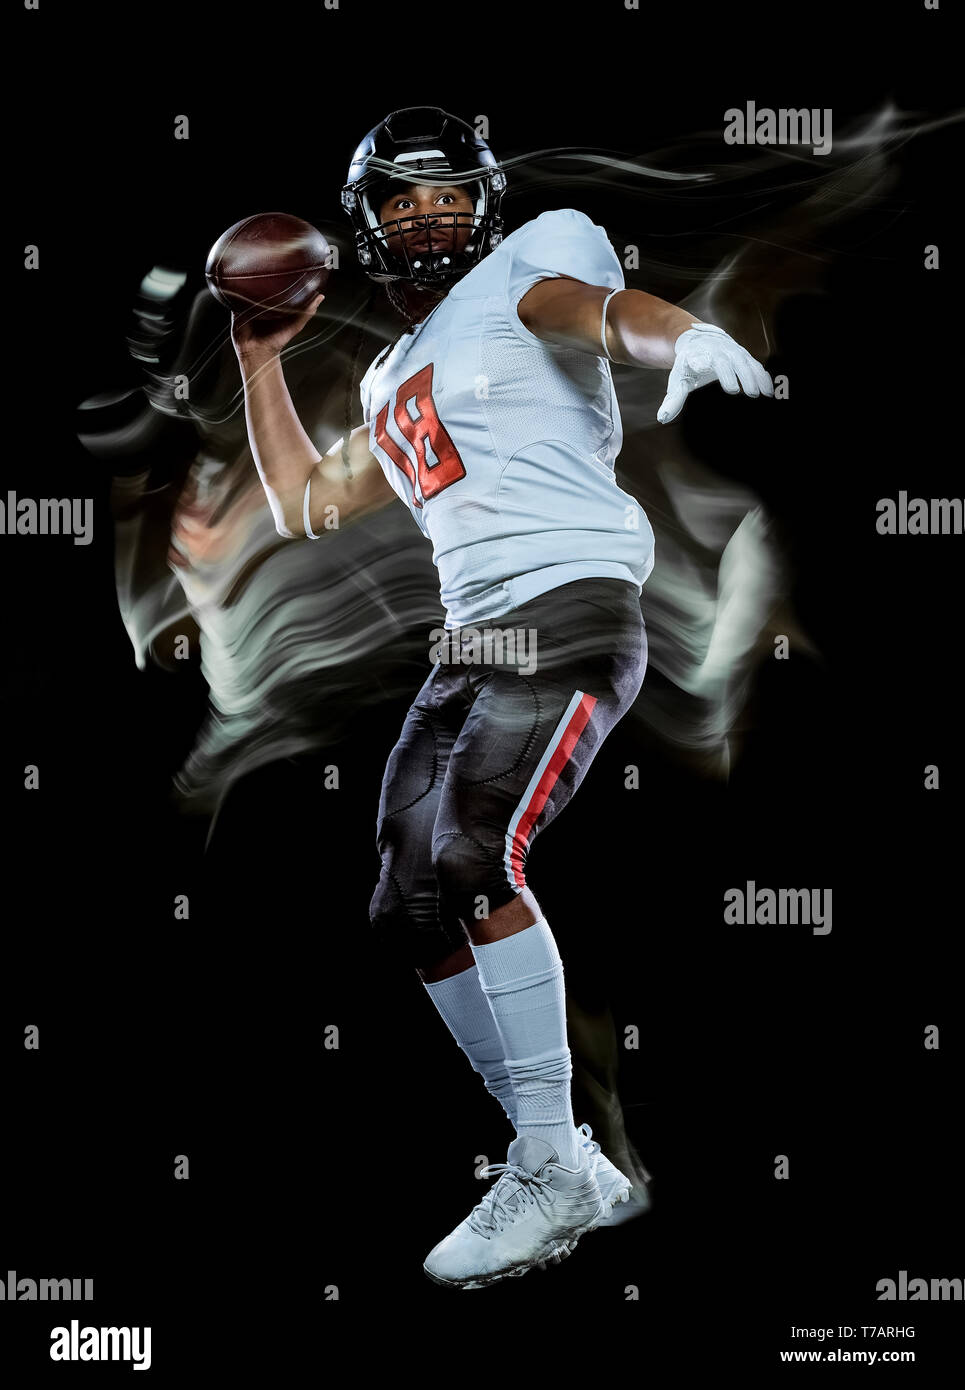 one african american football player man studio shot isolated on black background with light painting with blurred motion speed effect - Stock Image